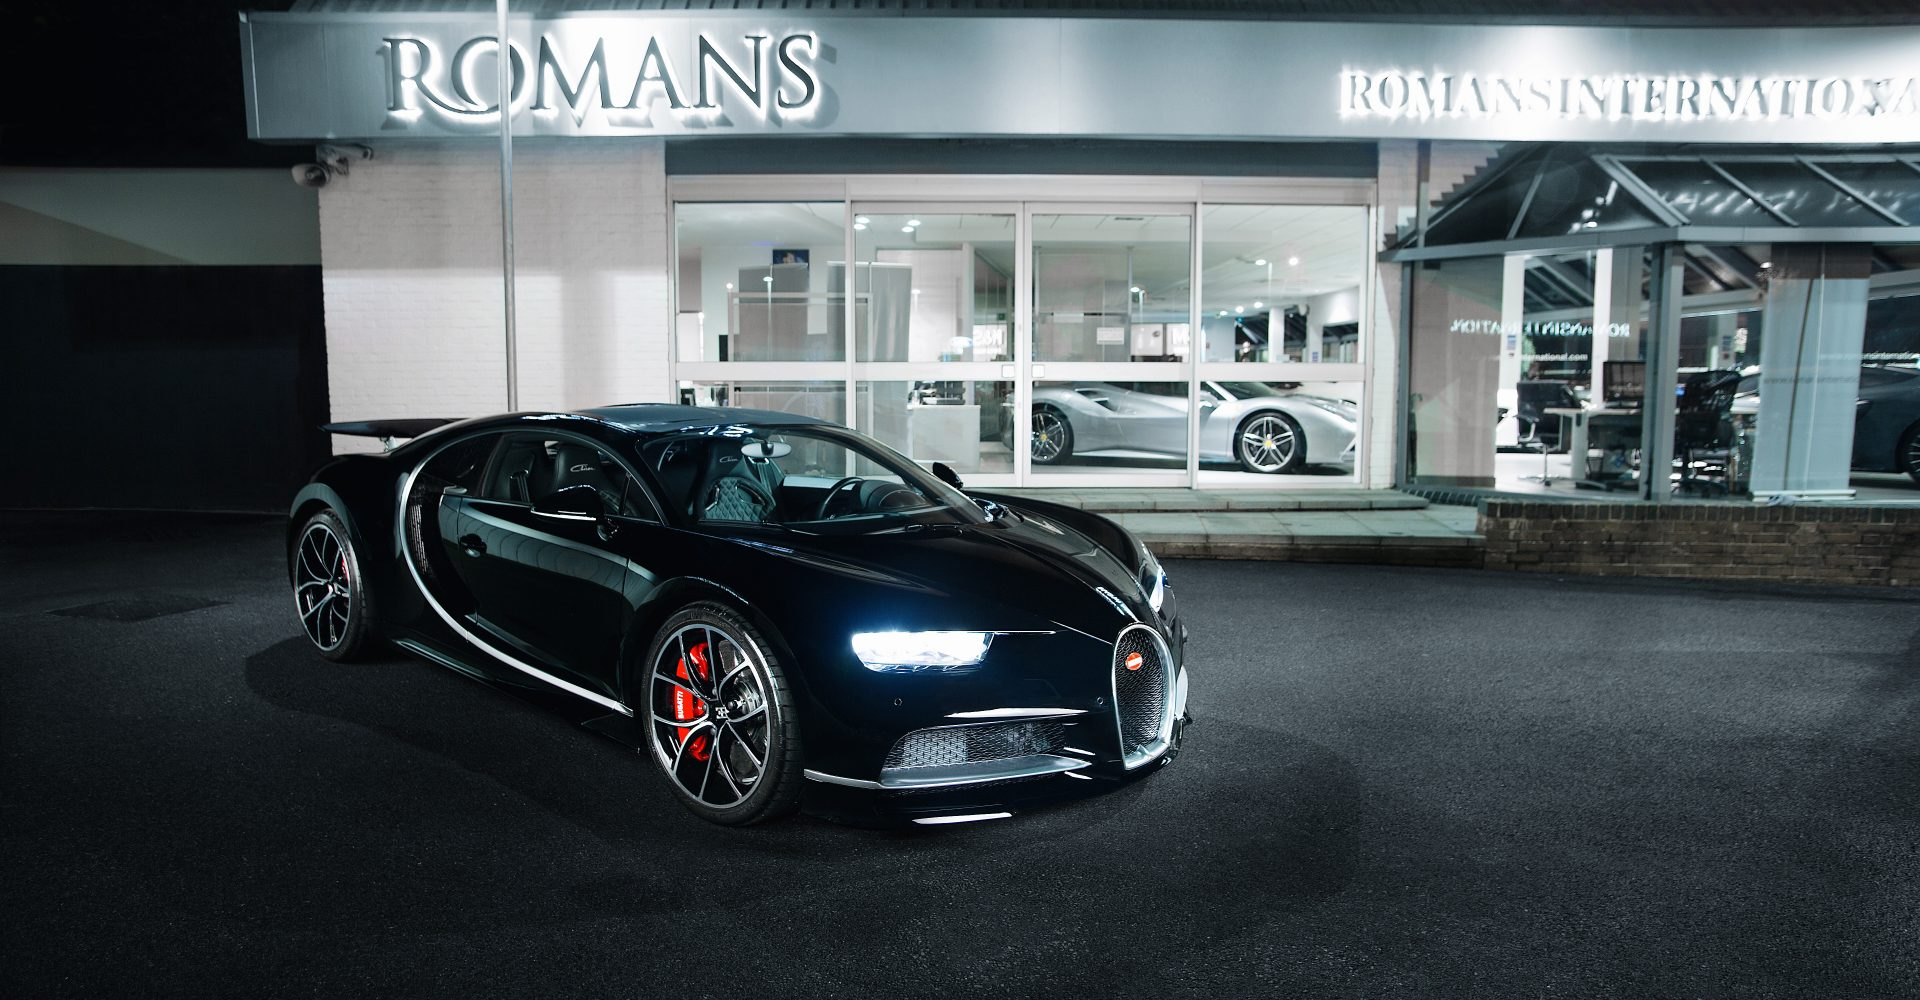 The first 'used' Bugatti Chiron in the UK is on sale — for £1.1 million more than new